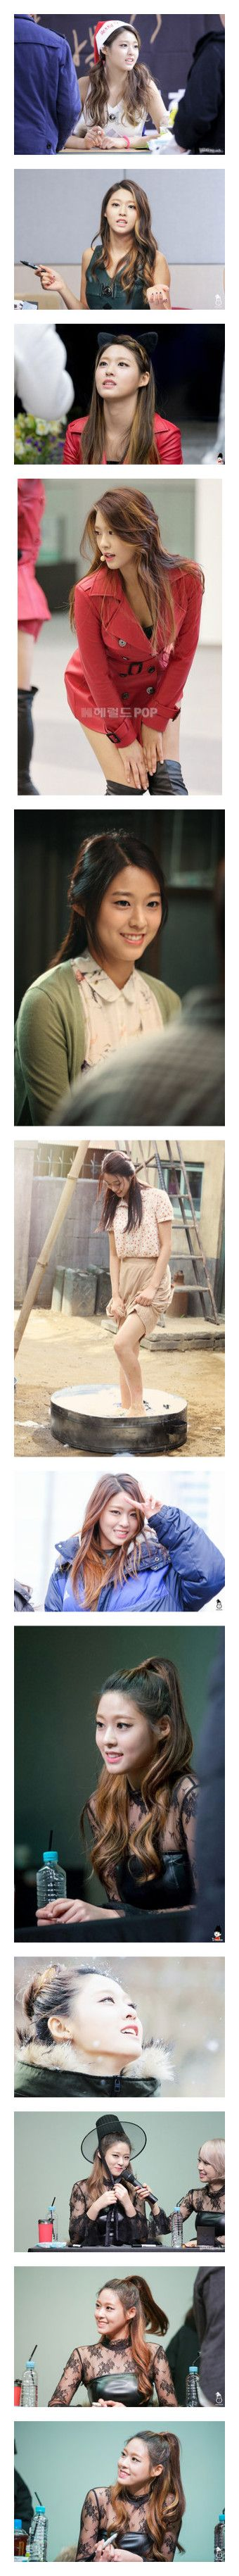 """""""KIM SEOLHYUN [1]"""" by this-little-babydoll ❤ liked on Polyvore"""